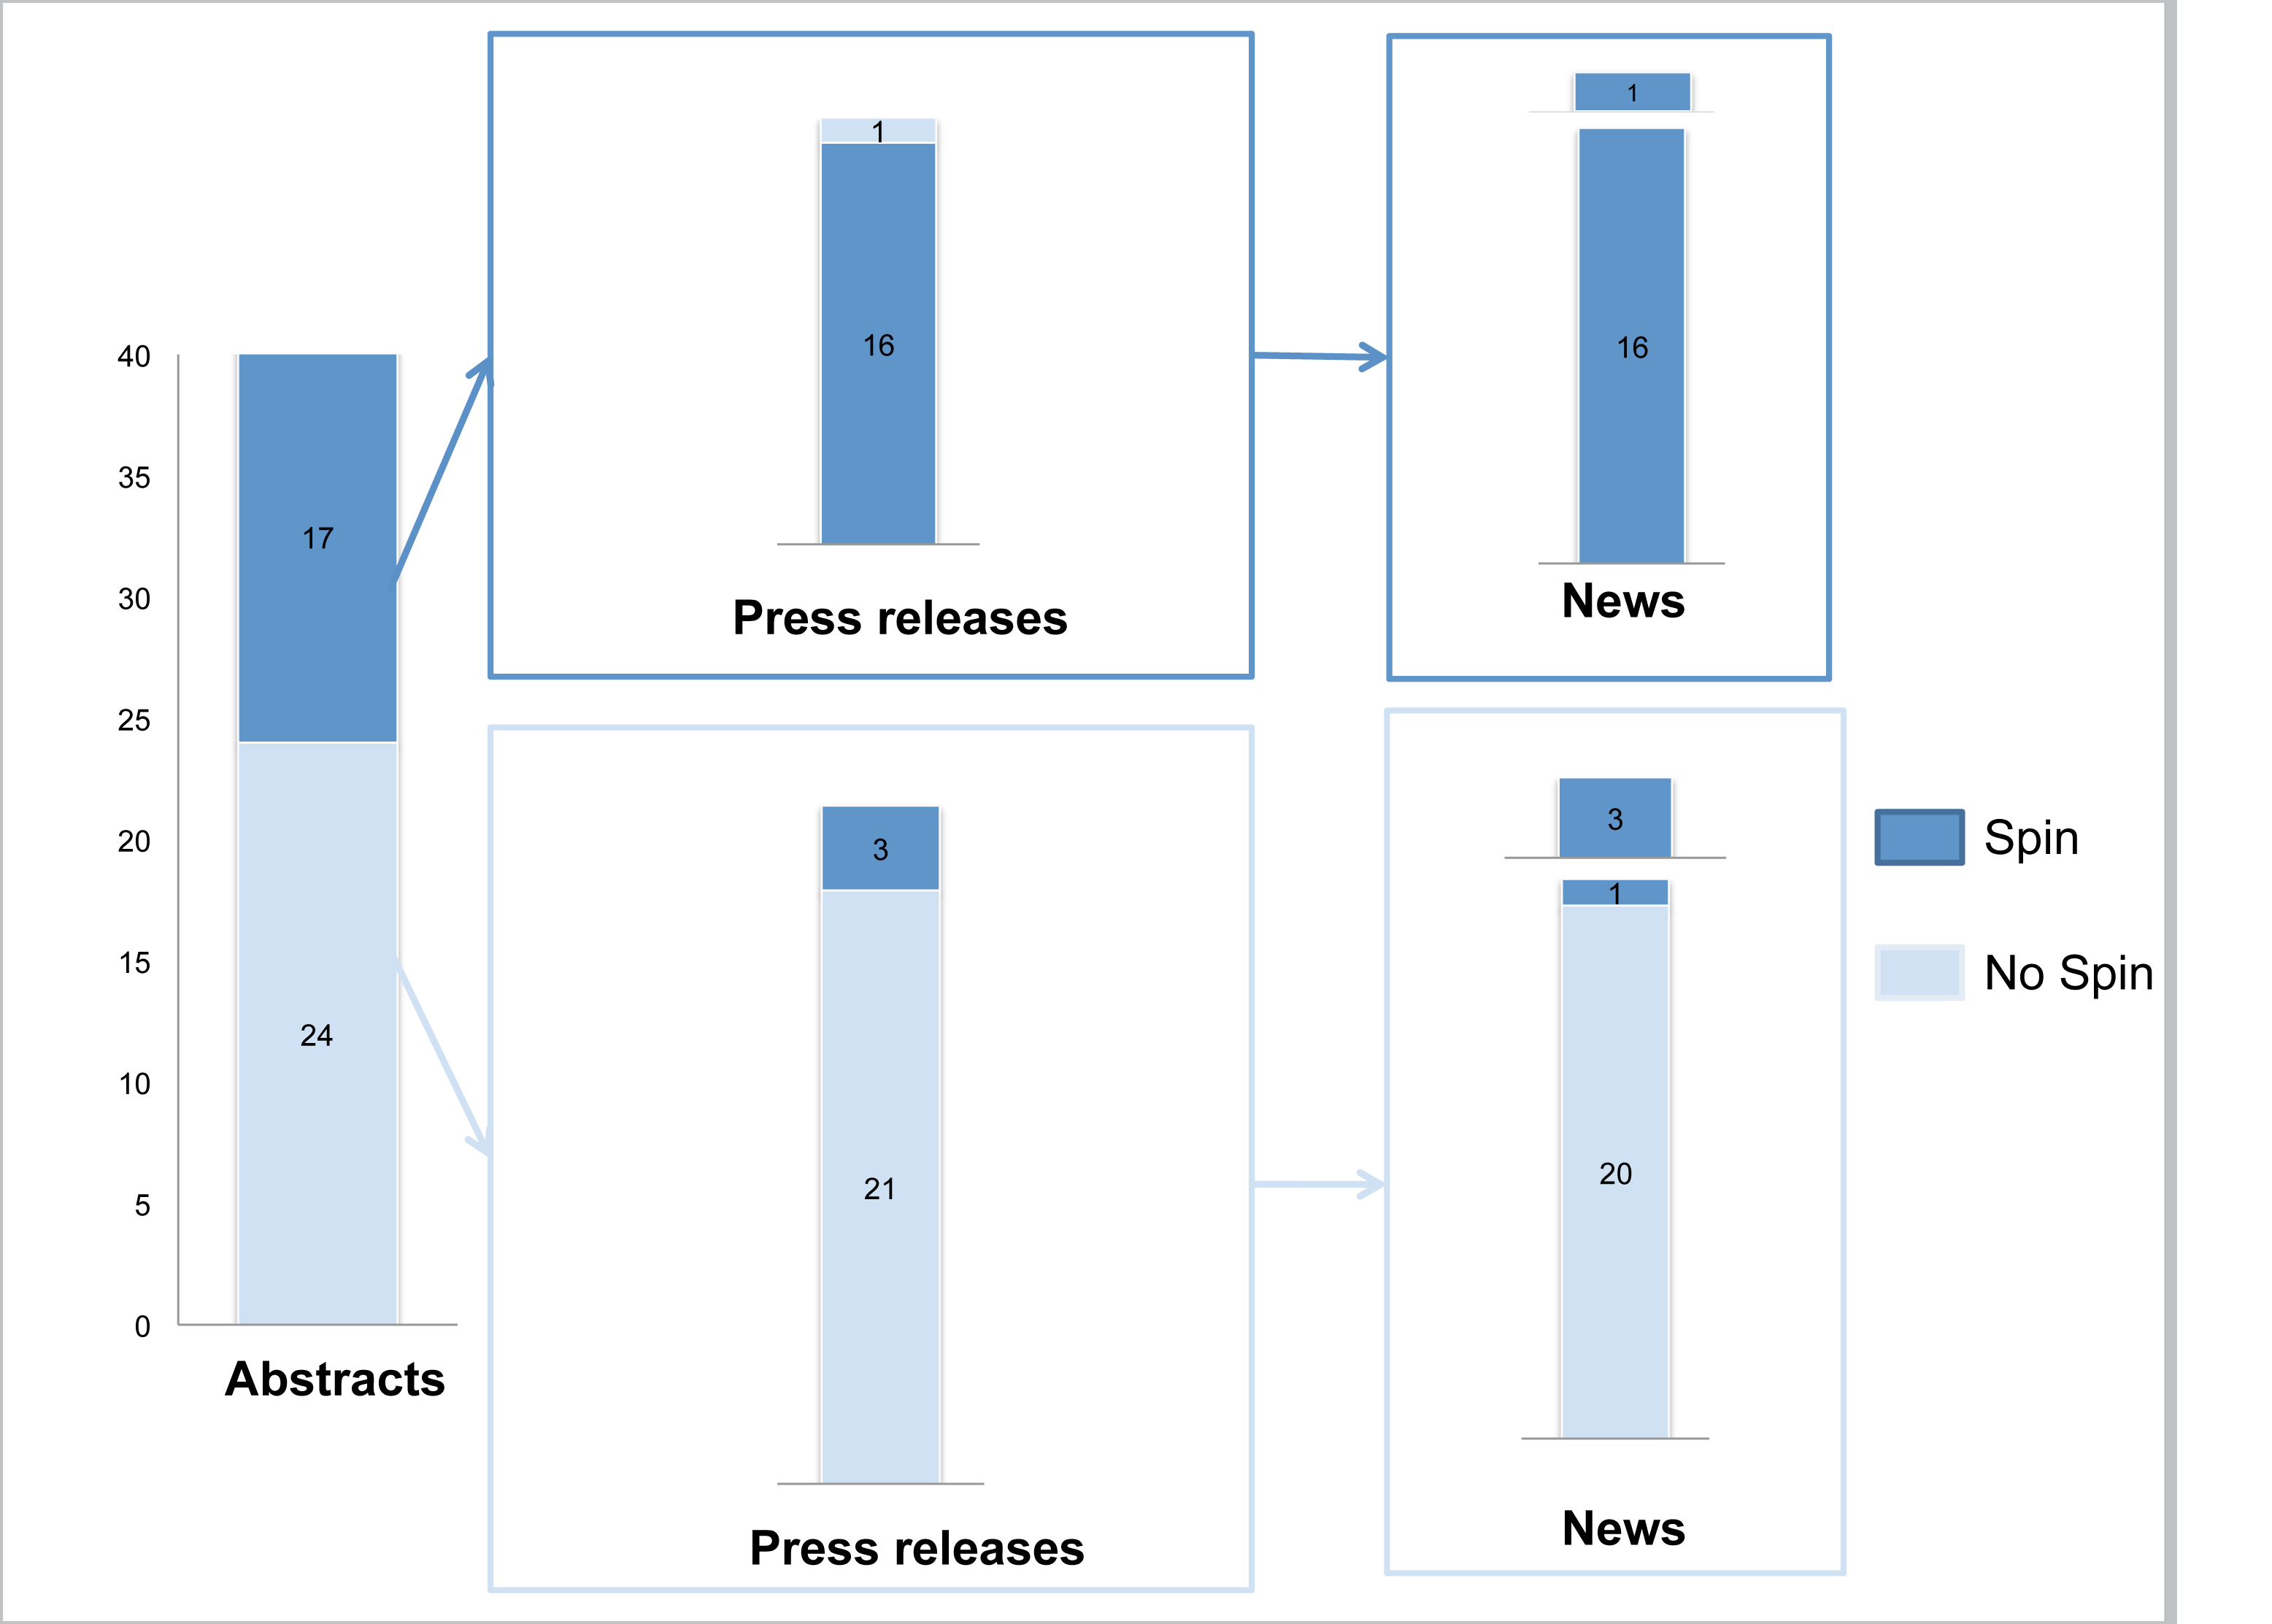 """Spin"" in abstract conclusions, press releases, and news items."